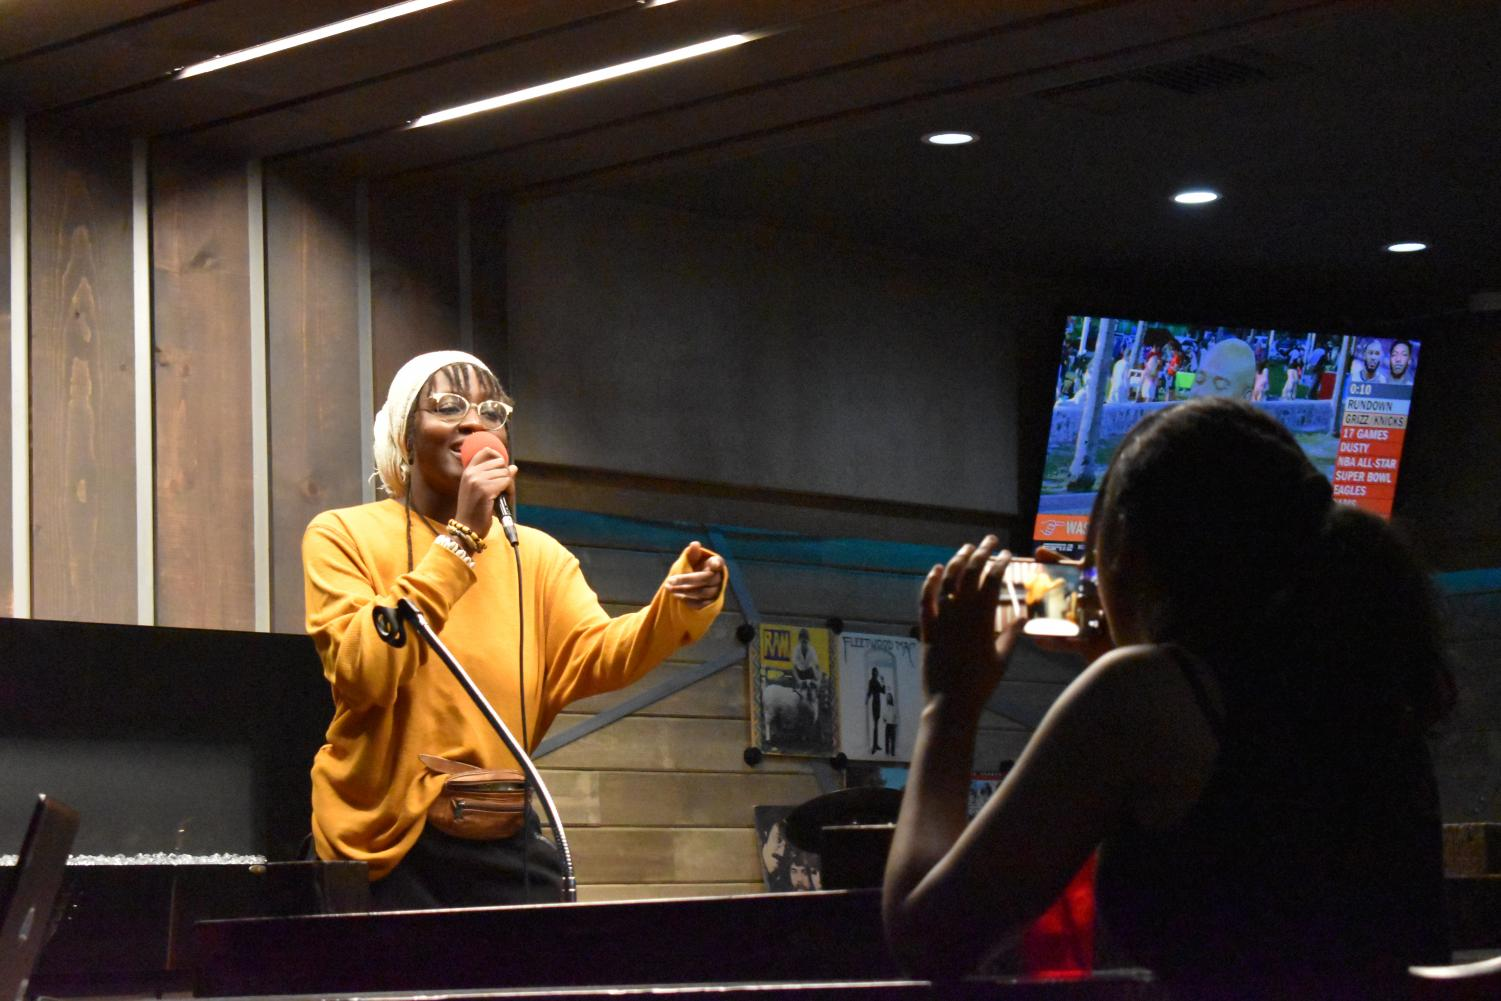 Rapper and Sac State senior communications major Greo the Storyteller performs her song